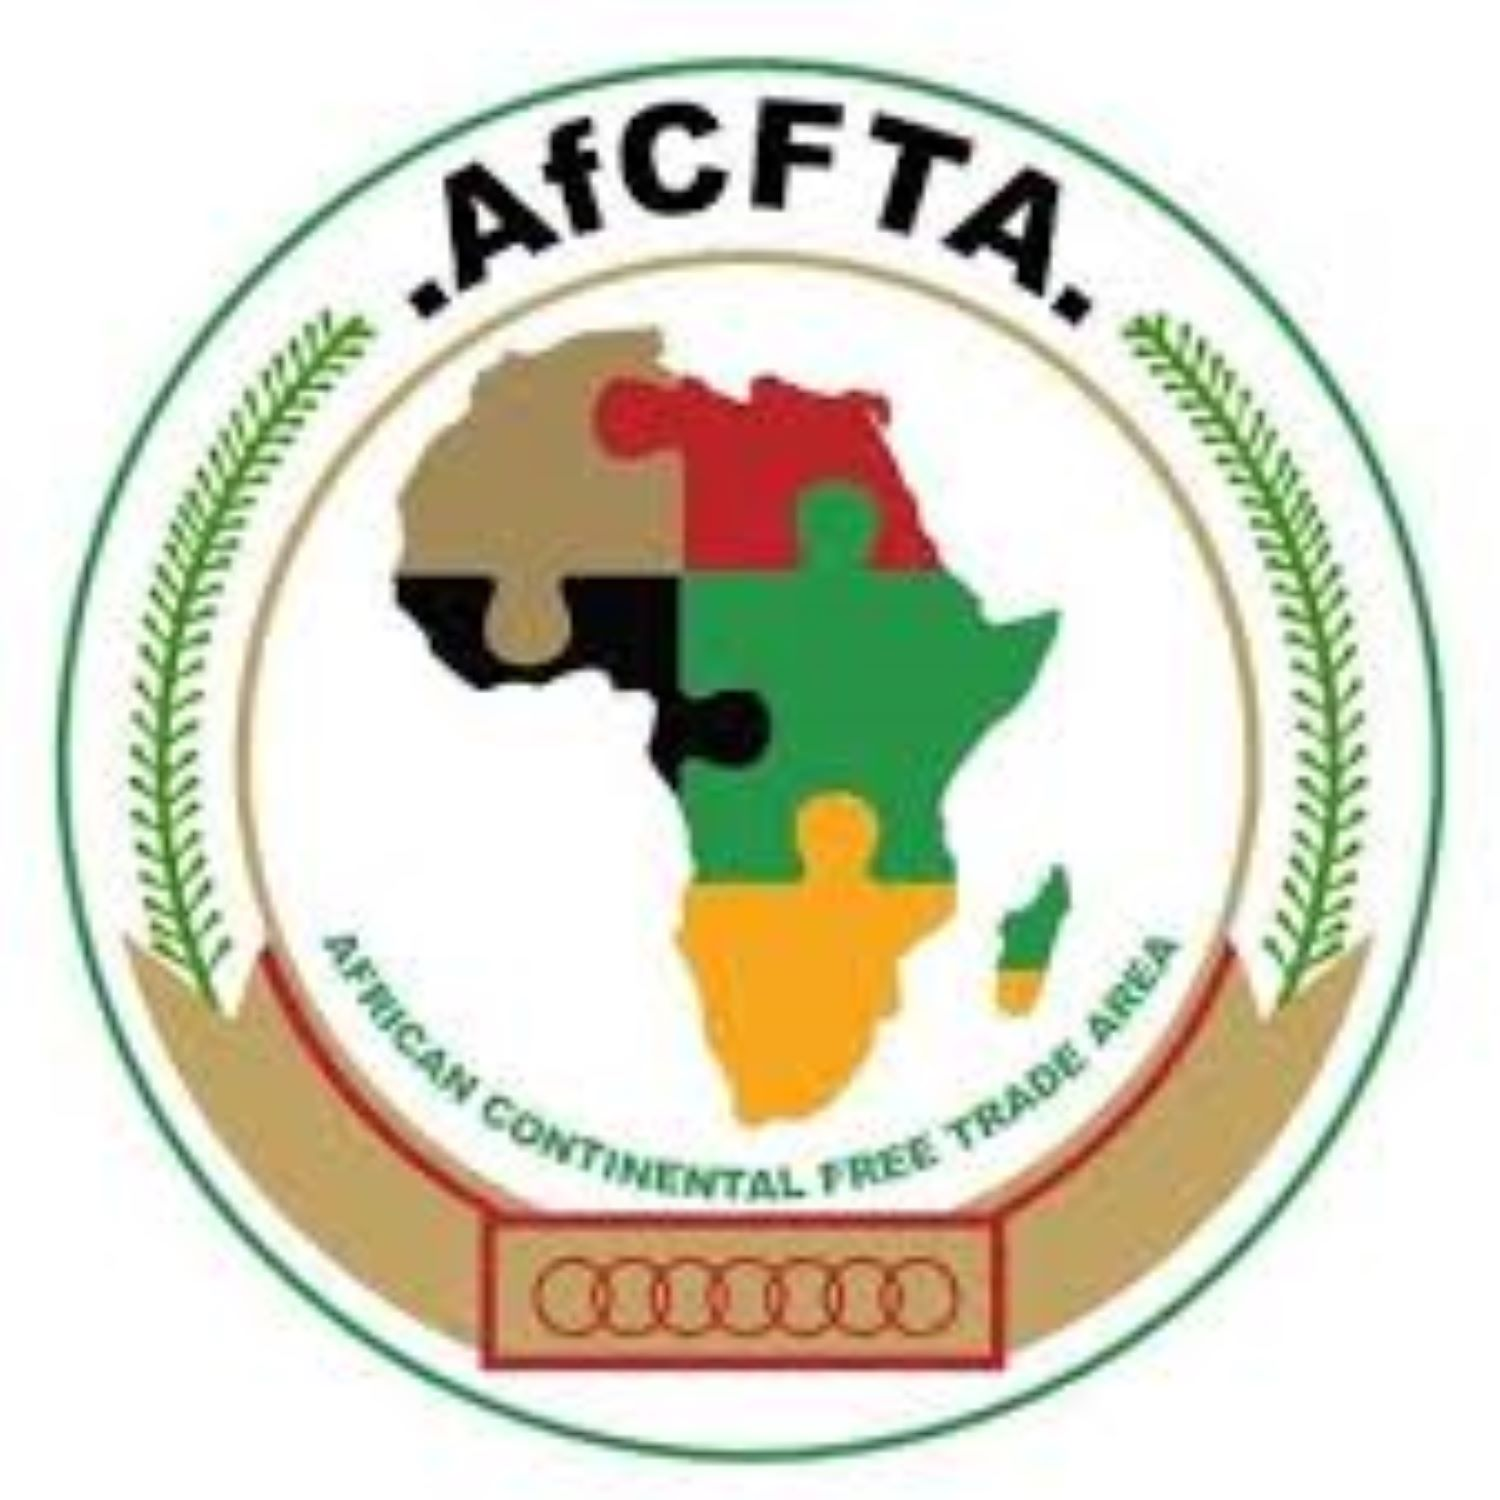 Buhari, 9 other presidents, others receive AfCFTA awards